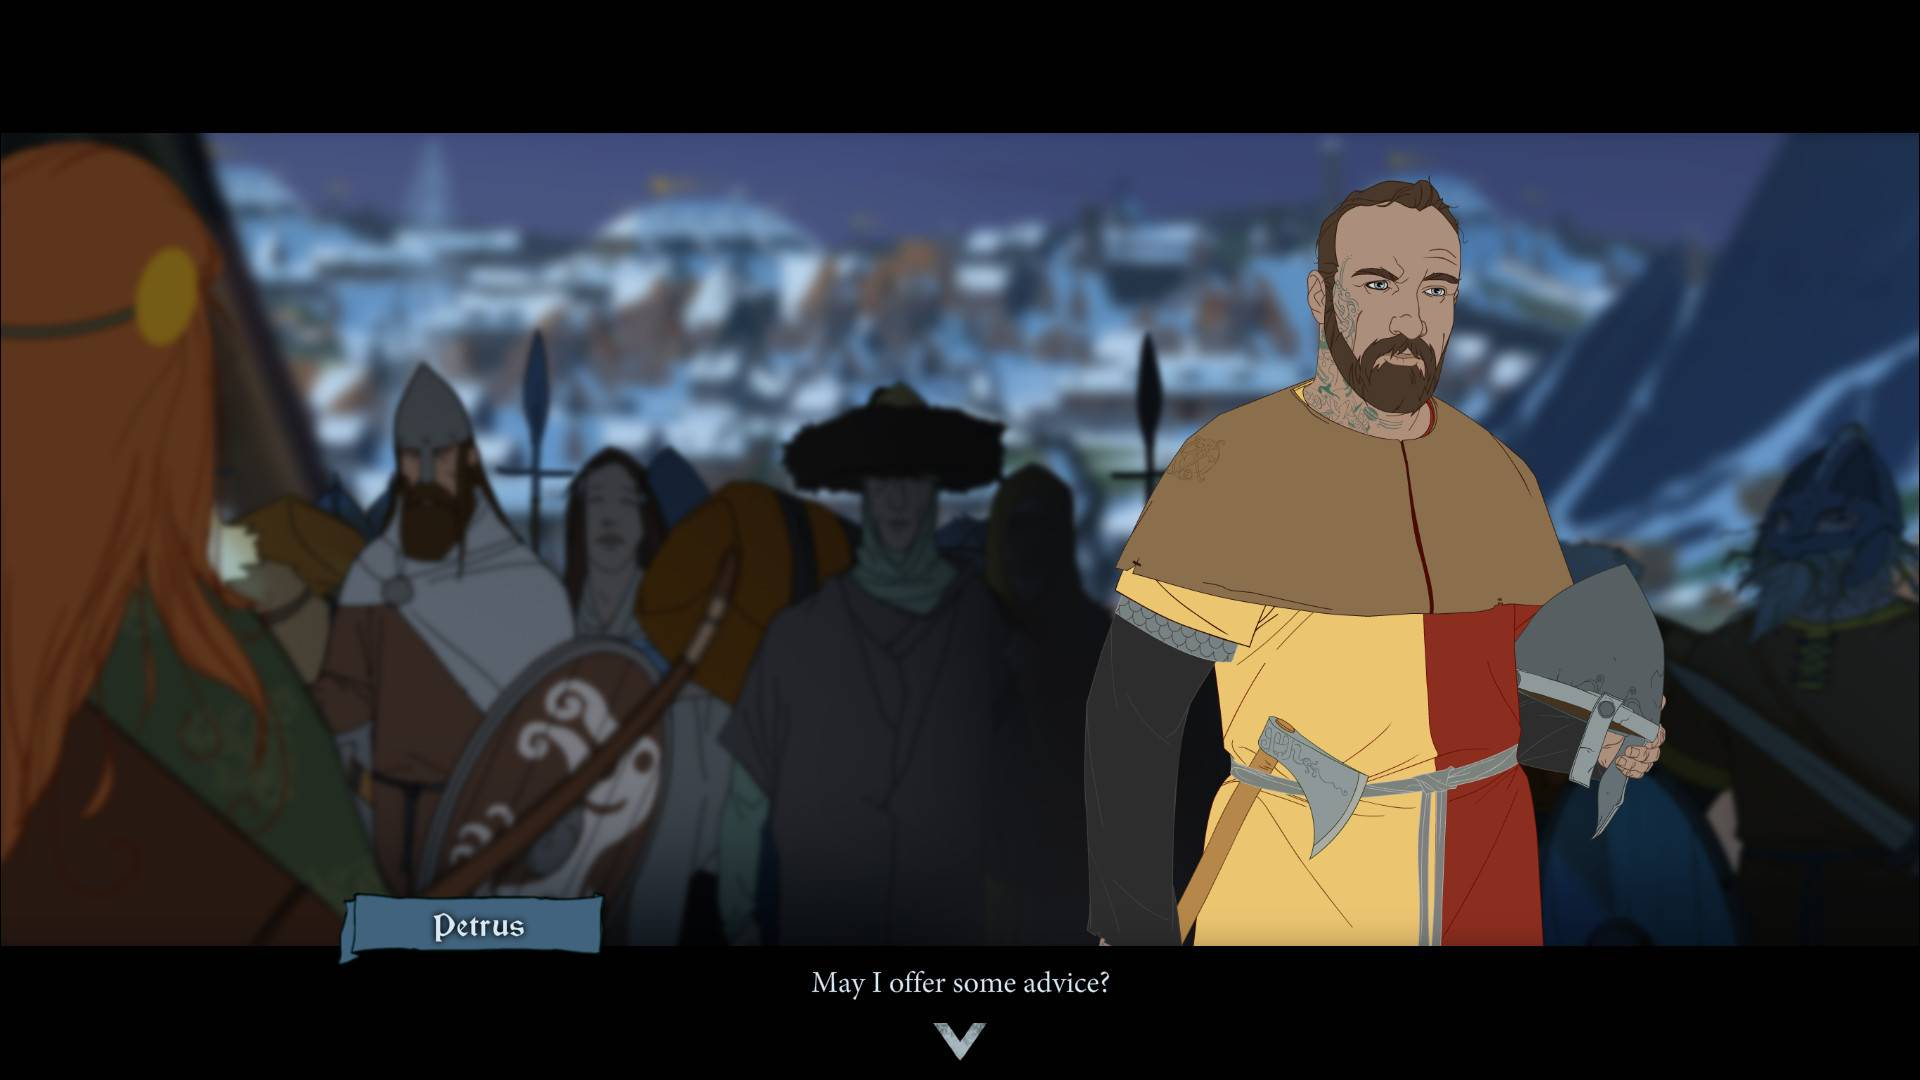 Article title about The Banner Saga 3